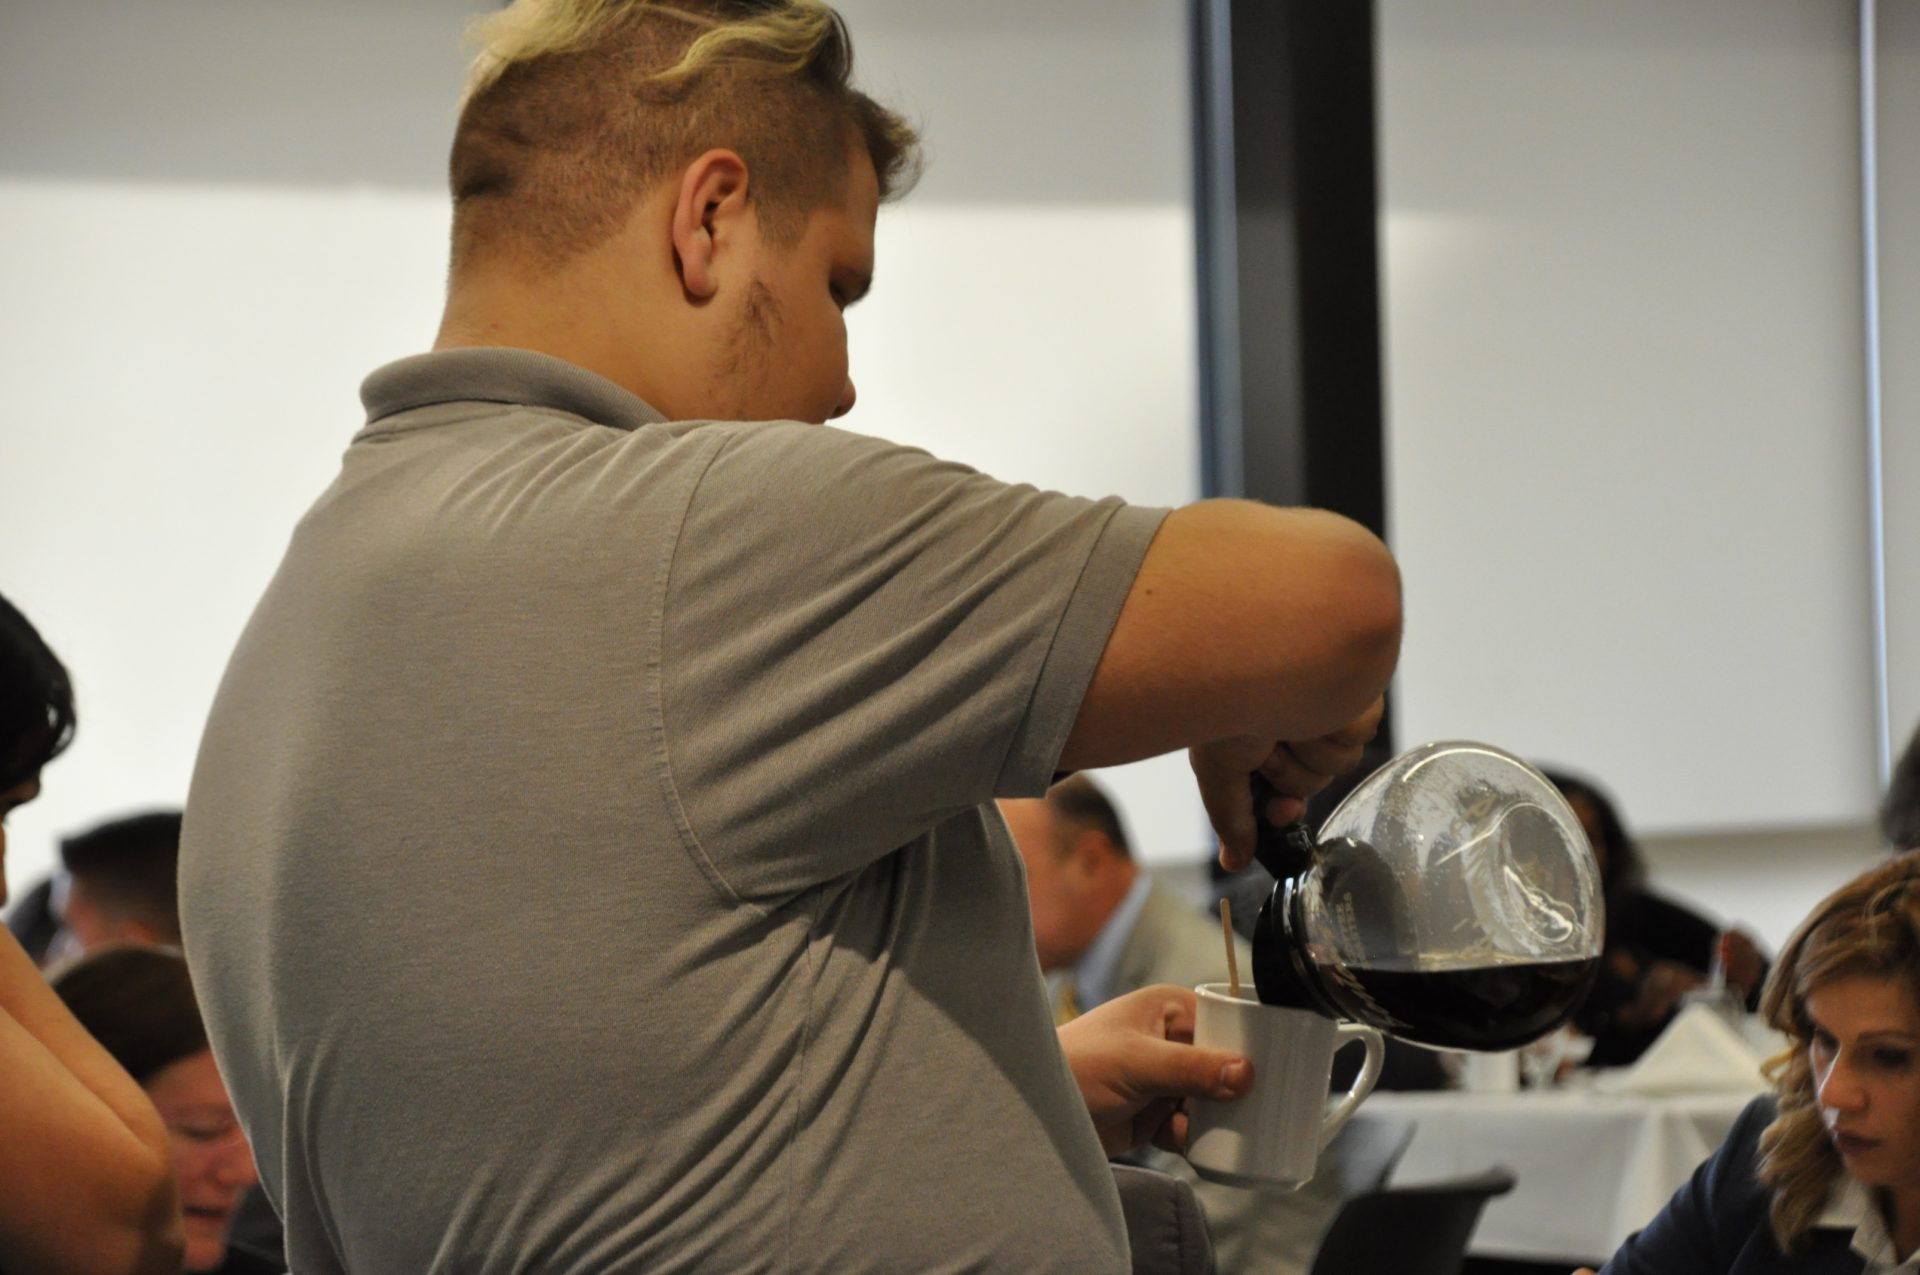 Culinary Student Pouring Coffee (side View)